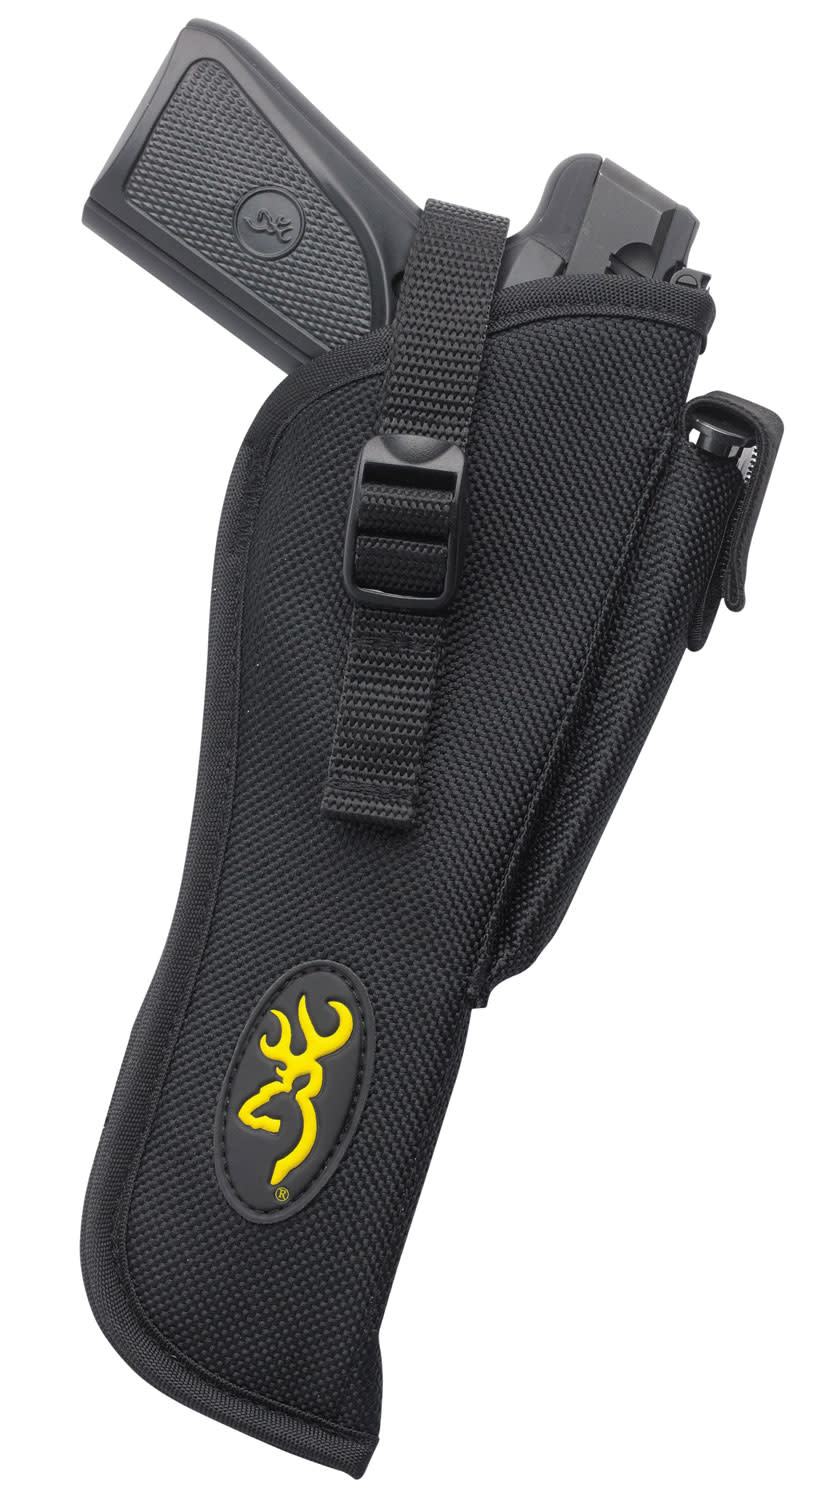 Browning Holster with Magazine Pouch - Buck Mark